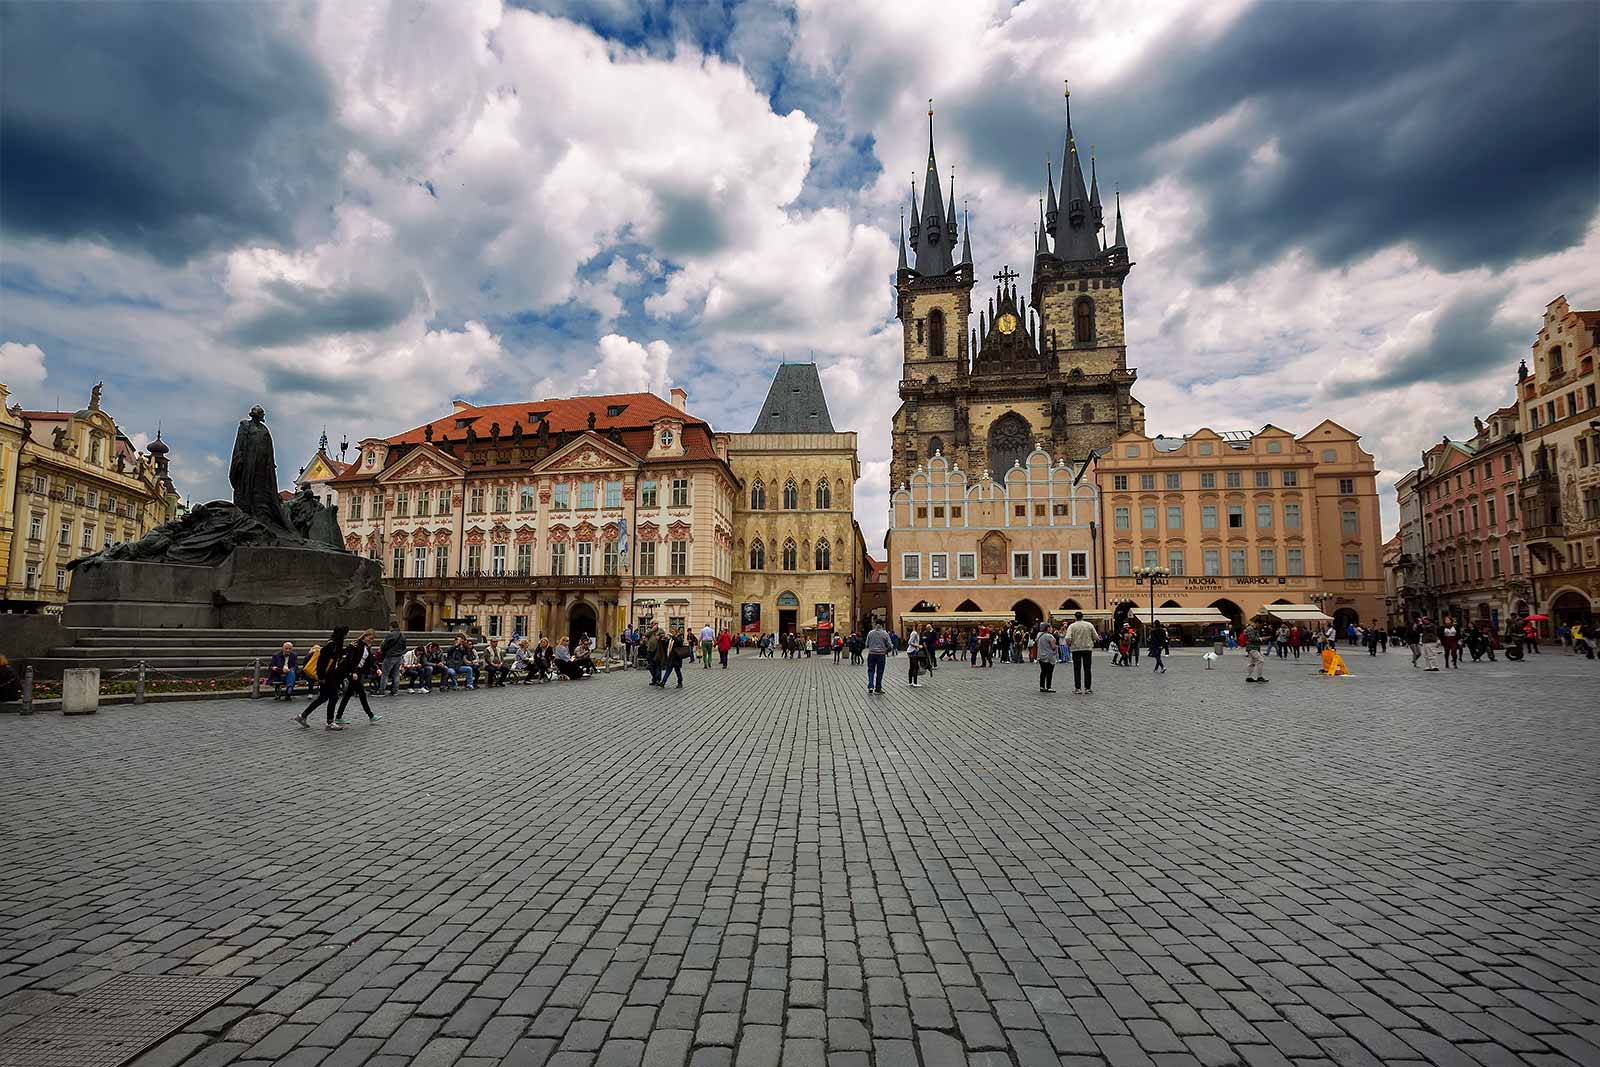 The most notable sights on the square are the Old Town Hall Tower & Astronomical Clock, Tyn Church and St. Nicholas Church. At the centre (left in this photo) of the Old Town Square is the Jan Hus statue.